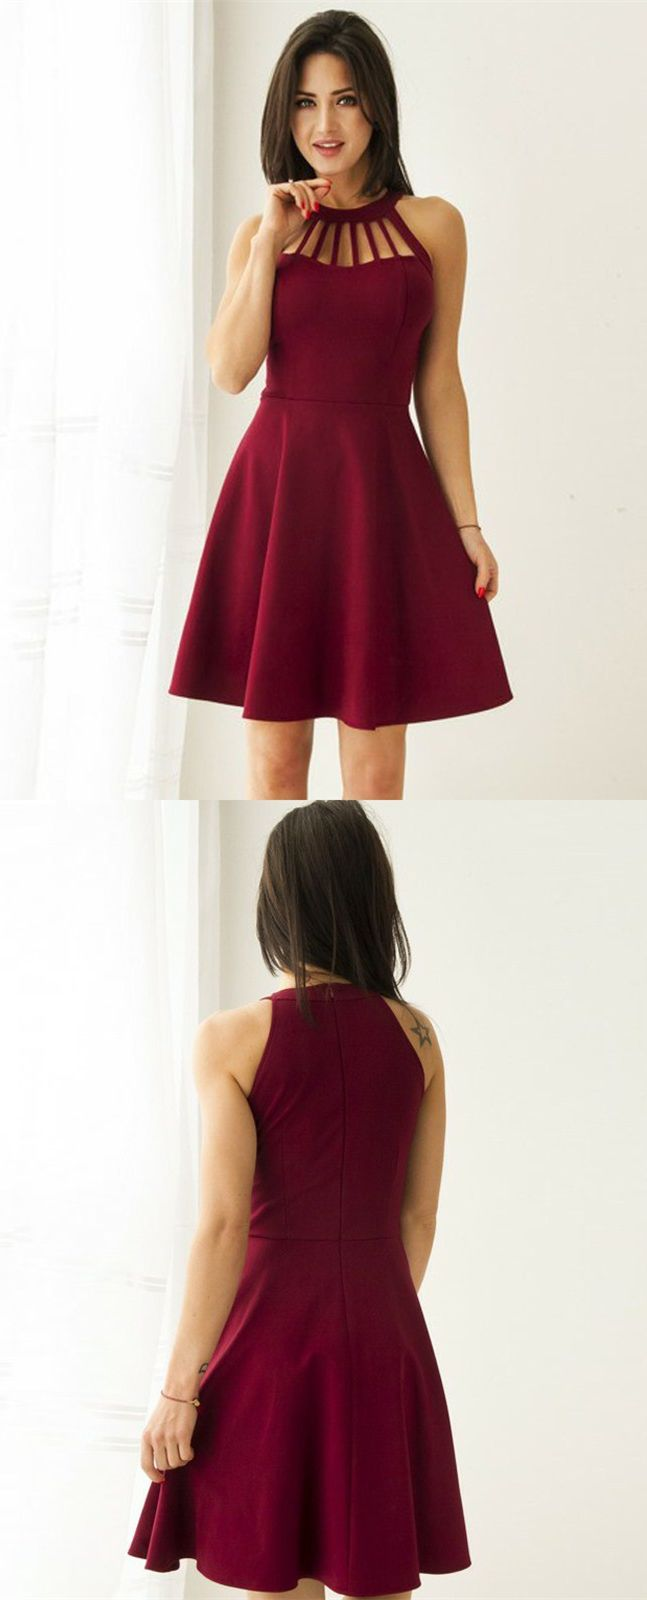 A-Line Round Neck Sleeveless Burgundy Satin Short Homecoming Dress ...